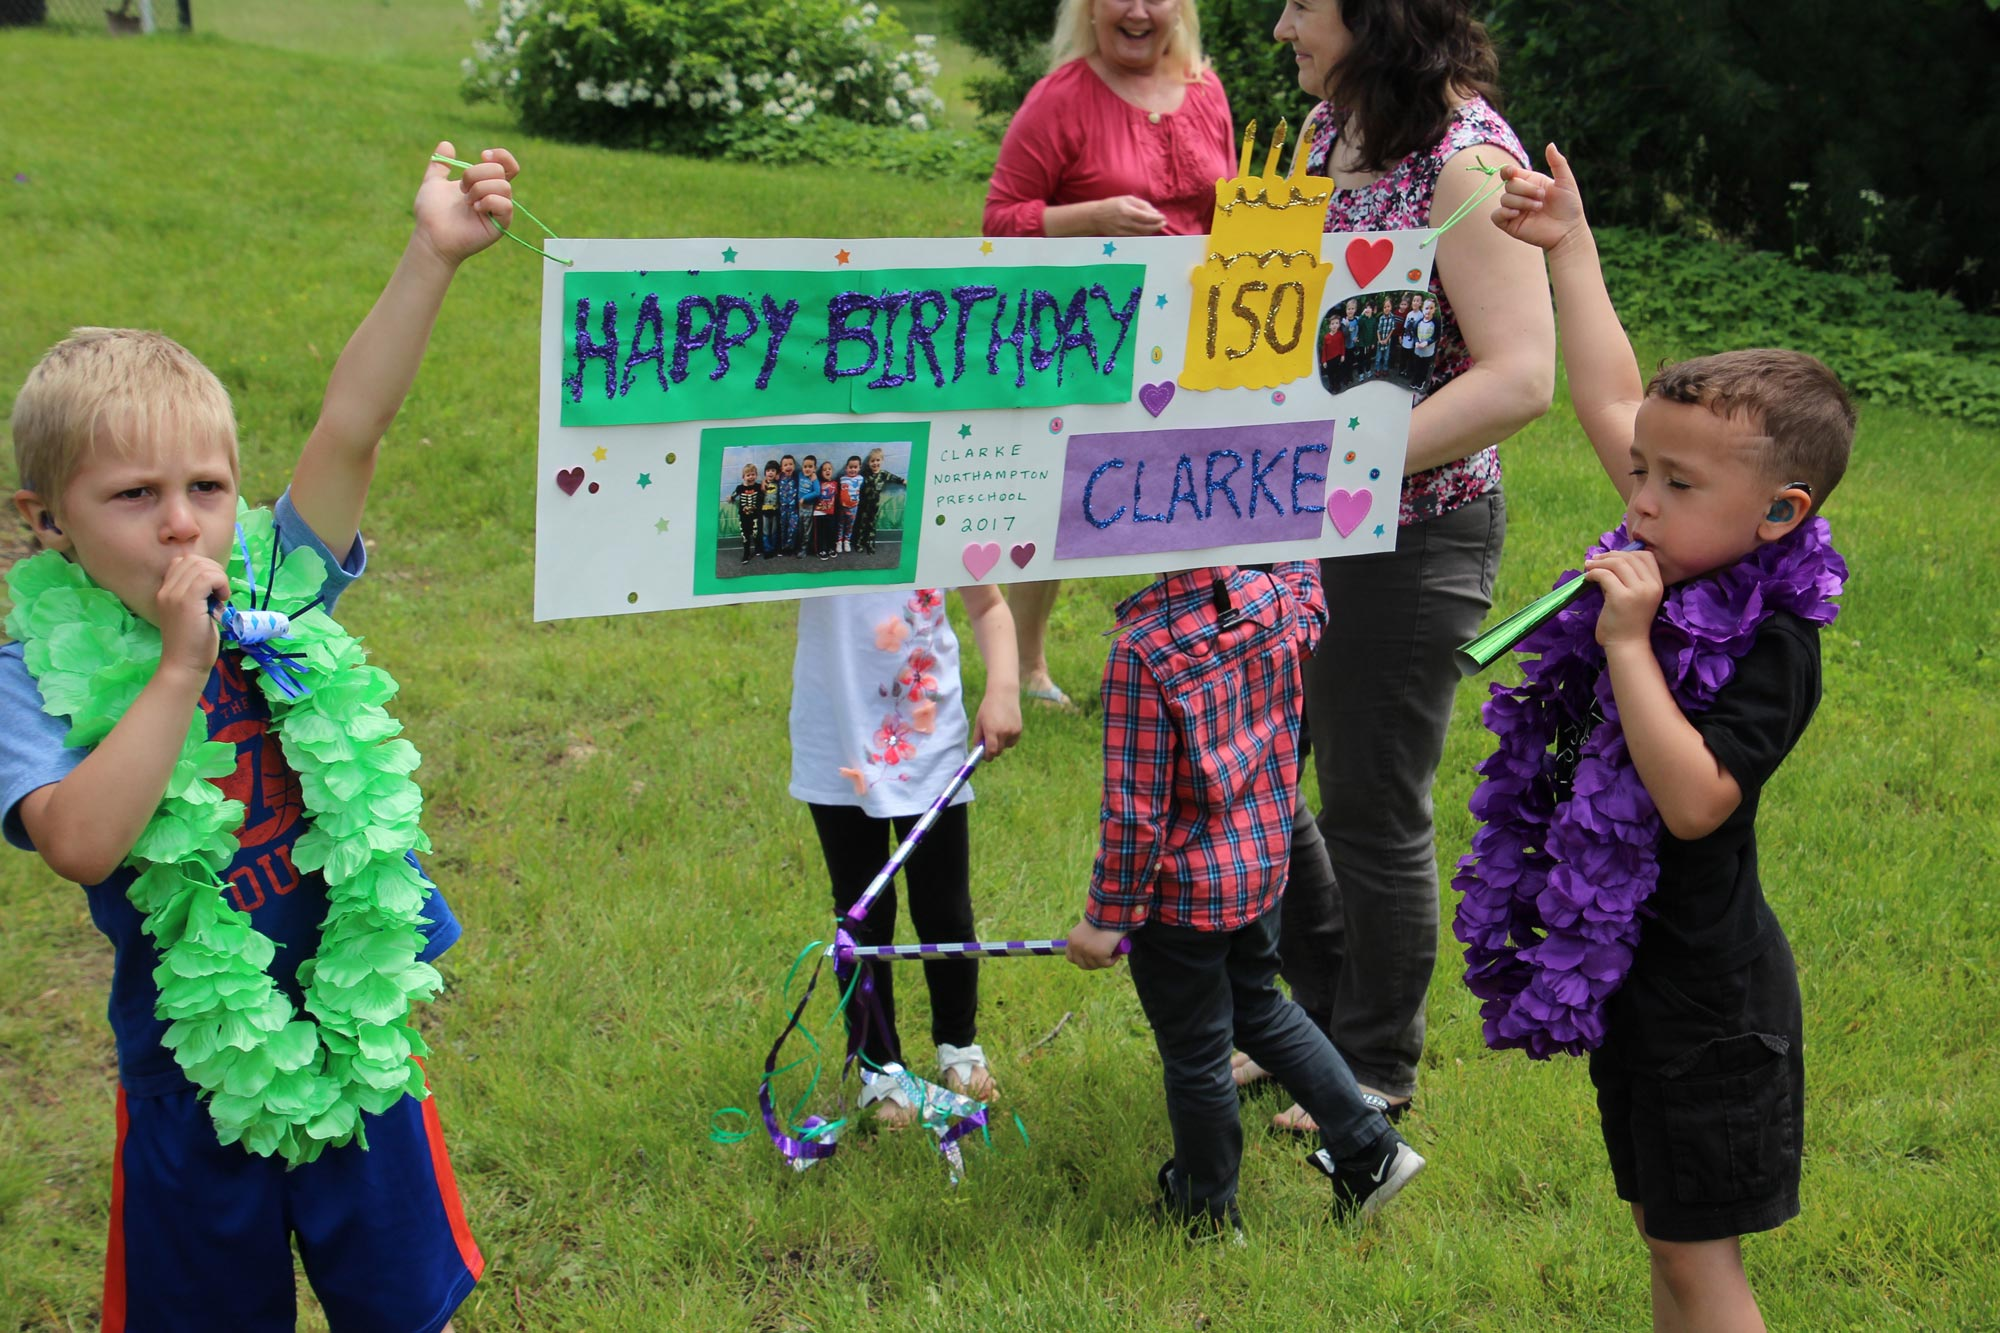 Clarke children hold 150th anniversary banner